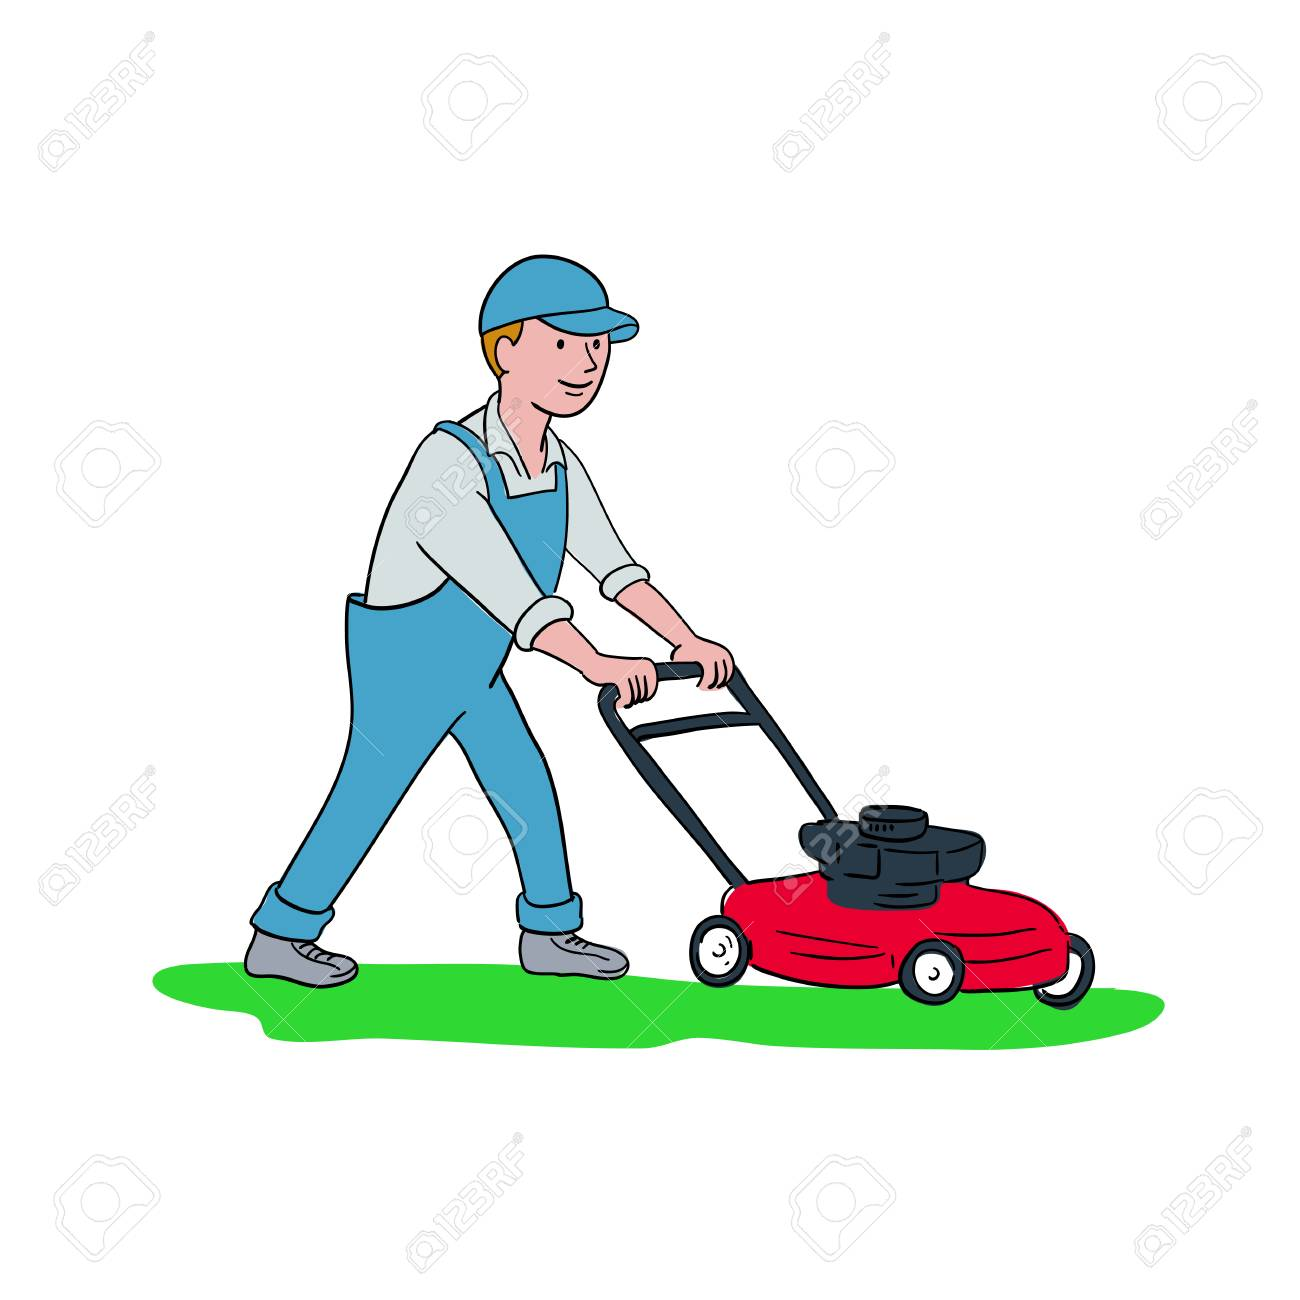 Cartoon style illustration of a gardener mowing lawn with lawnmower or lawn mower viewed from side on isolated background. - 96550896